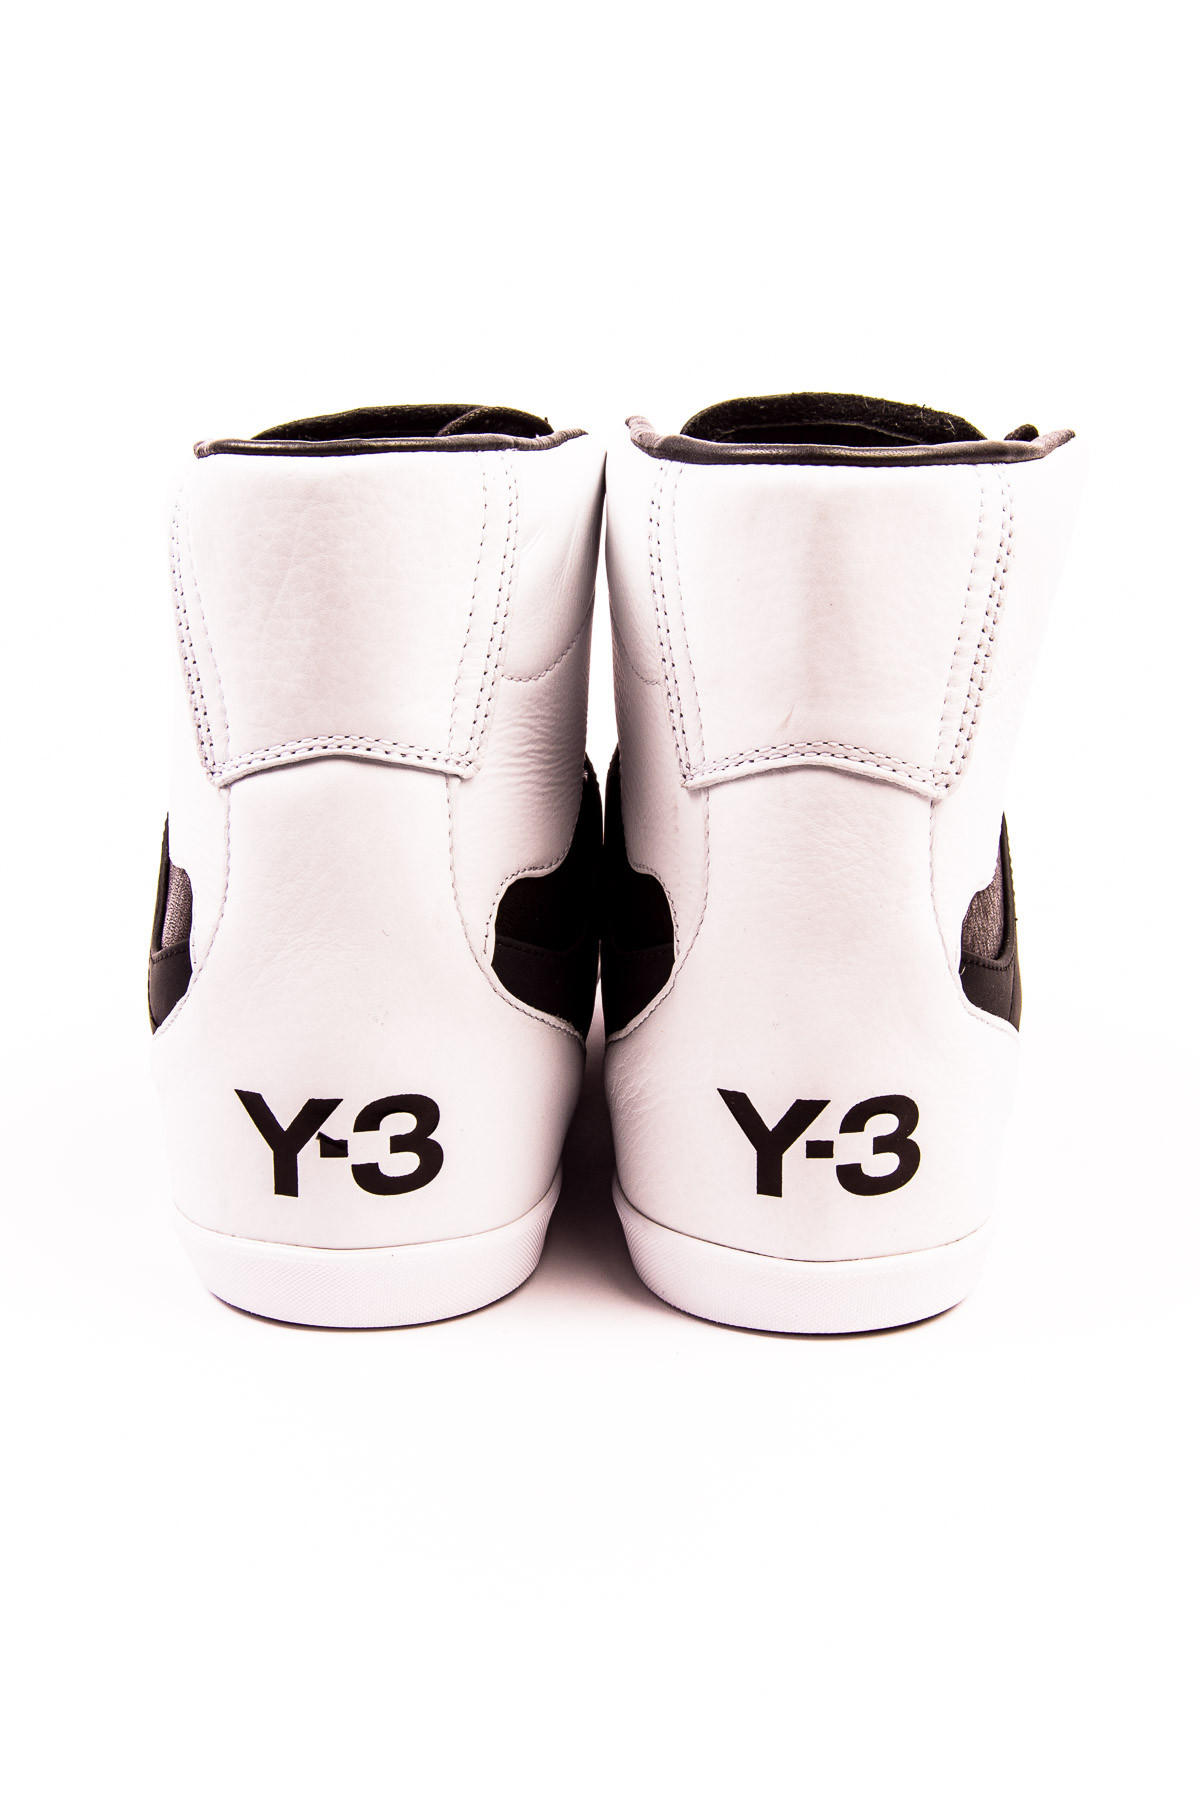 2674f899b Y-3 Honja High Black Run White Black from Probus